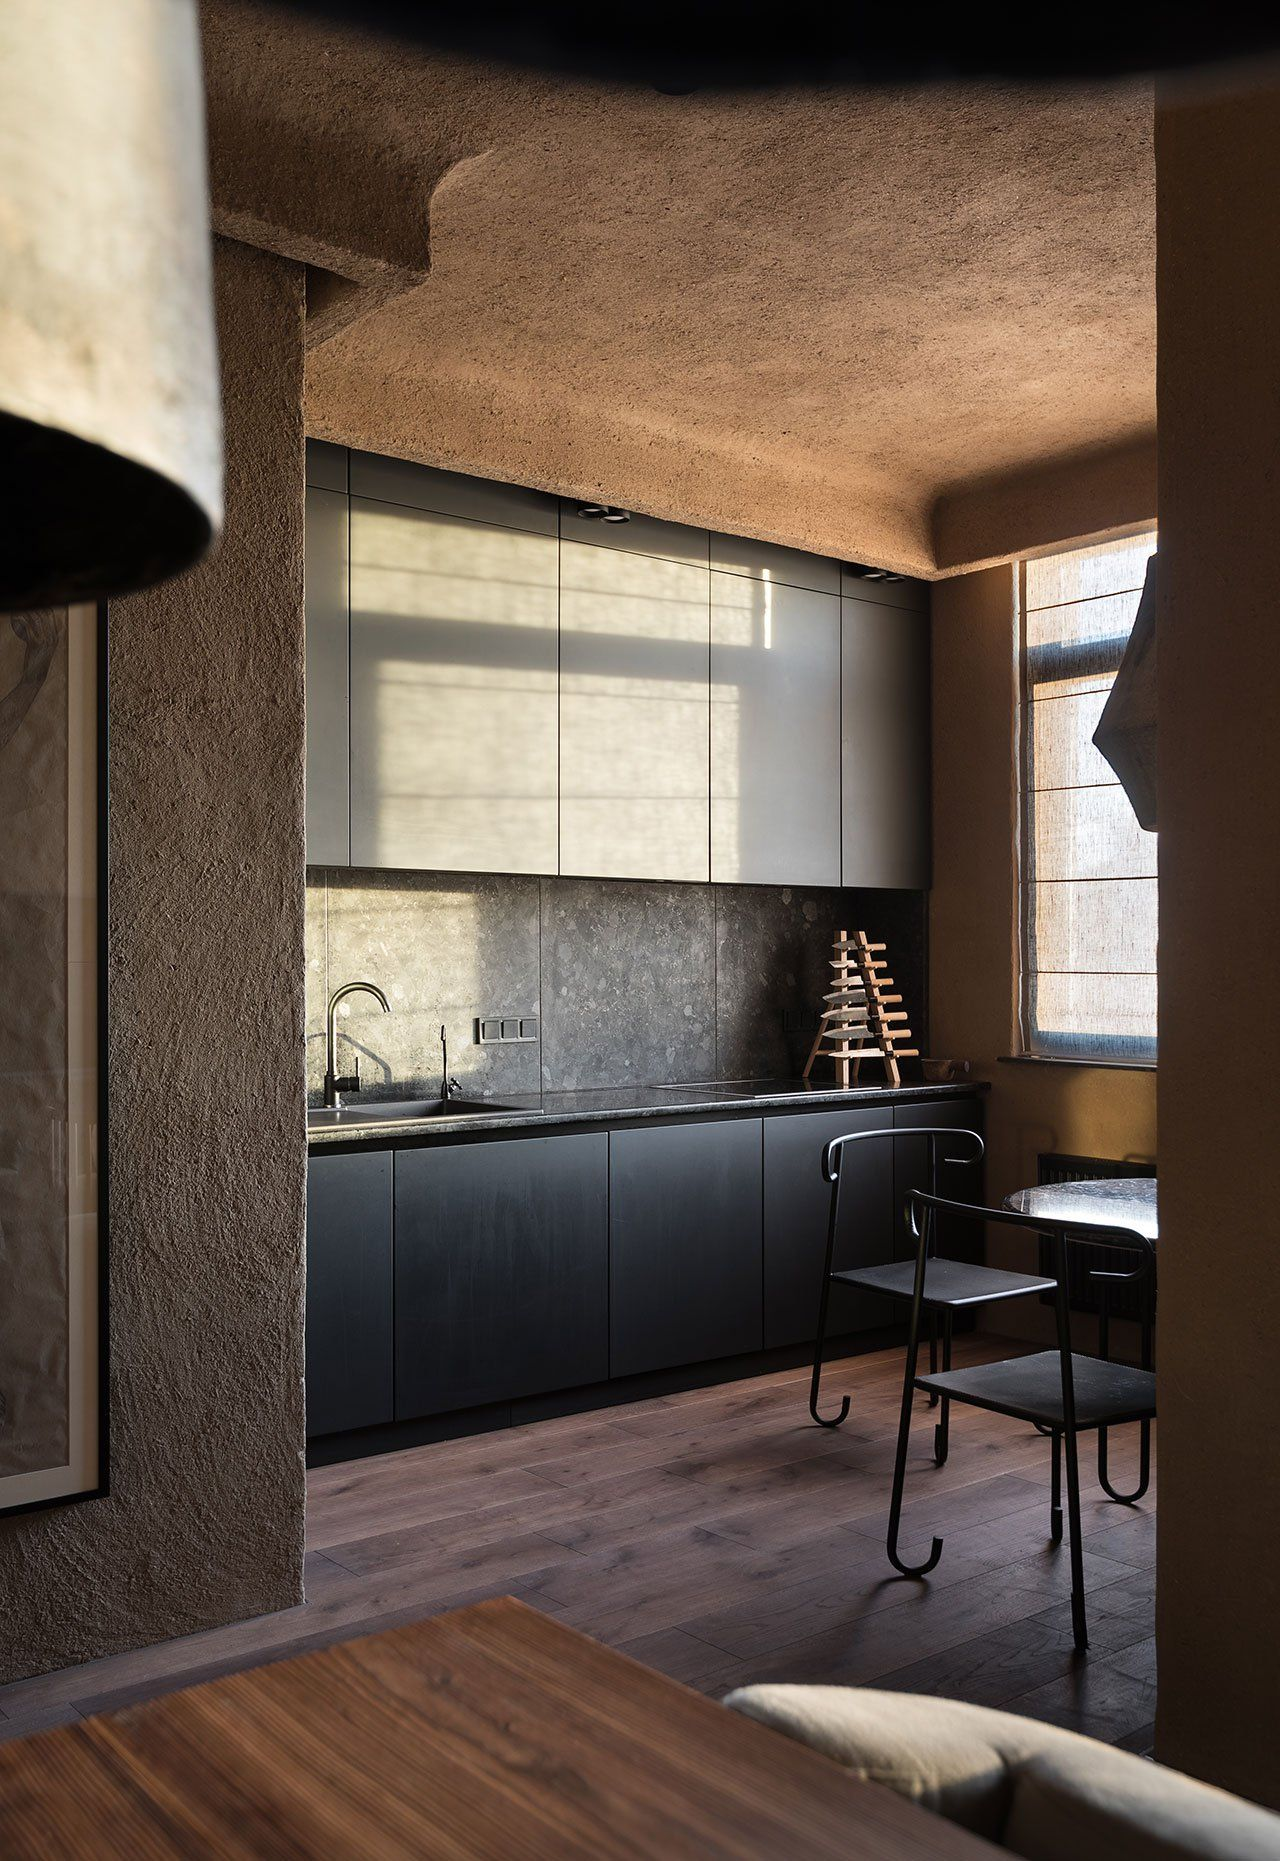 Imperfection is Beautiful: the Wabi Sabi Apartment by Sergey Makhno ...